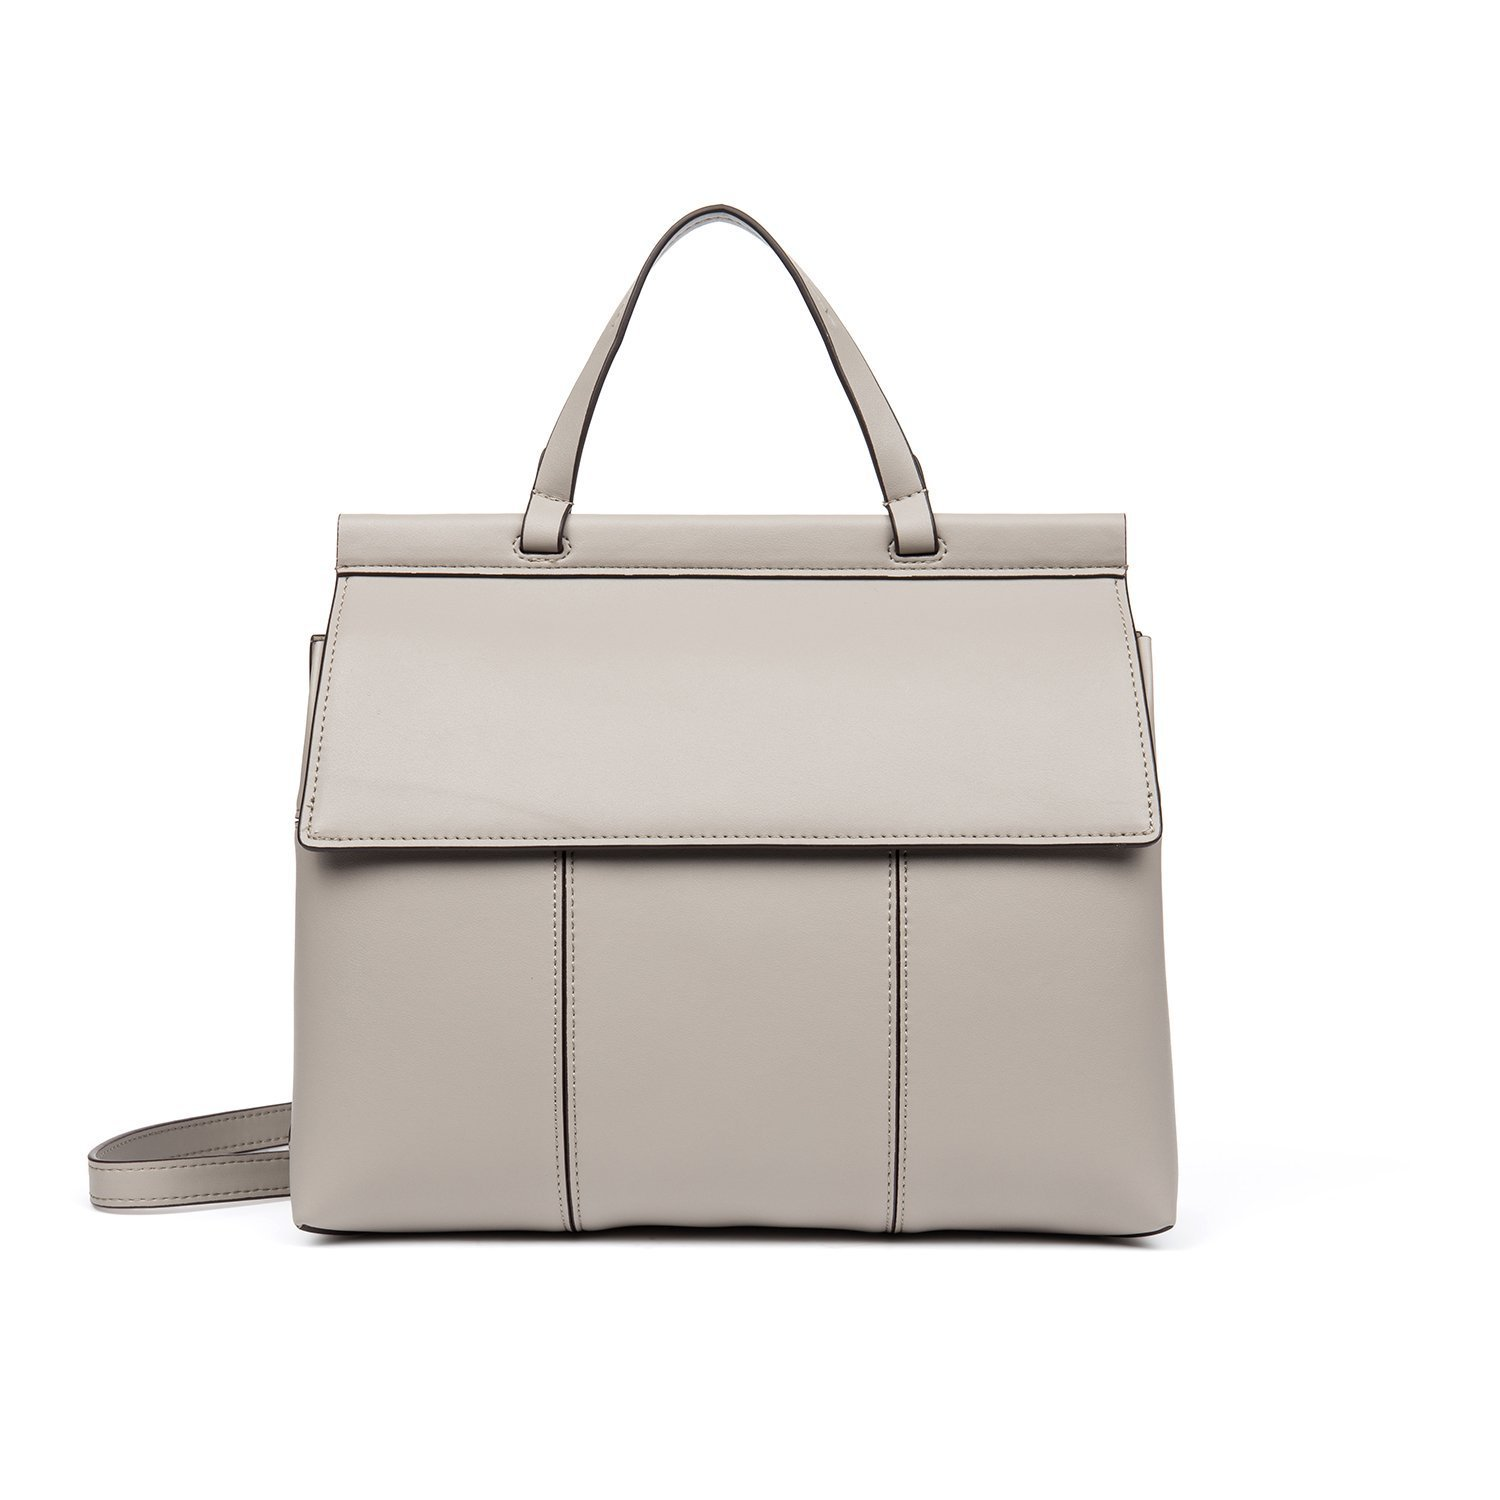 DANJUE Elegant Genuine Leather women's handbags with Multiple Compartments Top-handle Shoulder Briefcase Carry Bag H7008 (White)